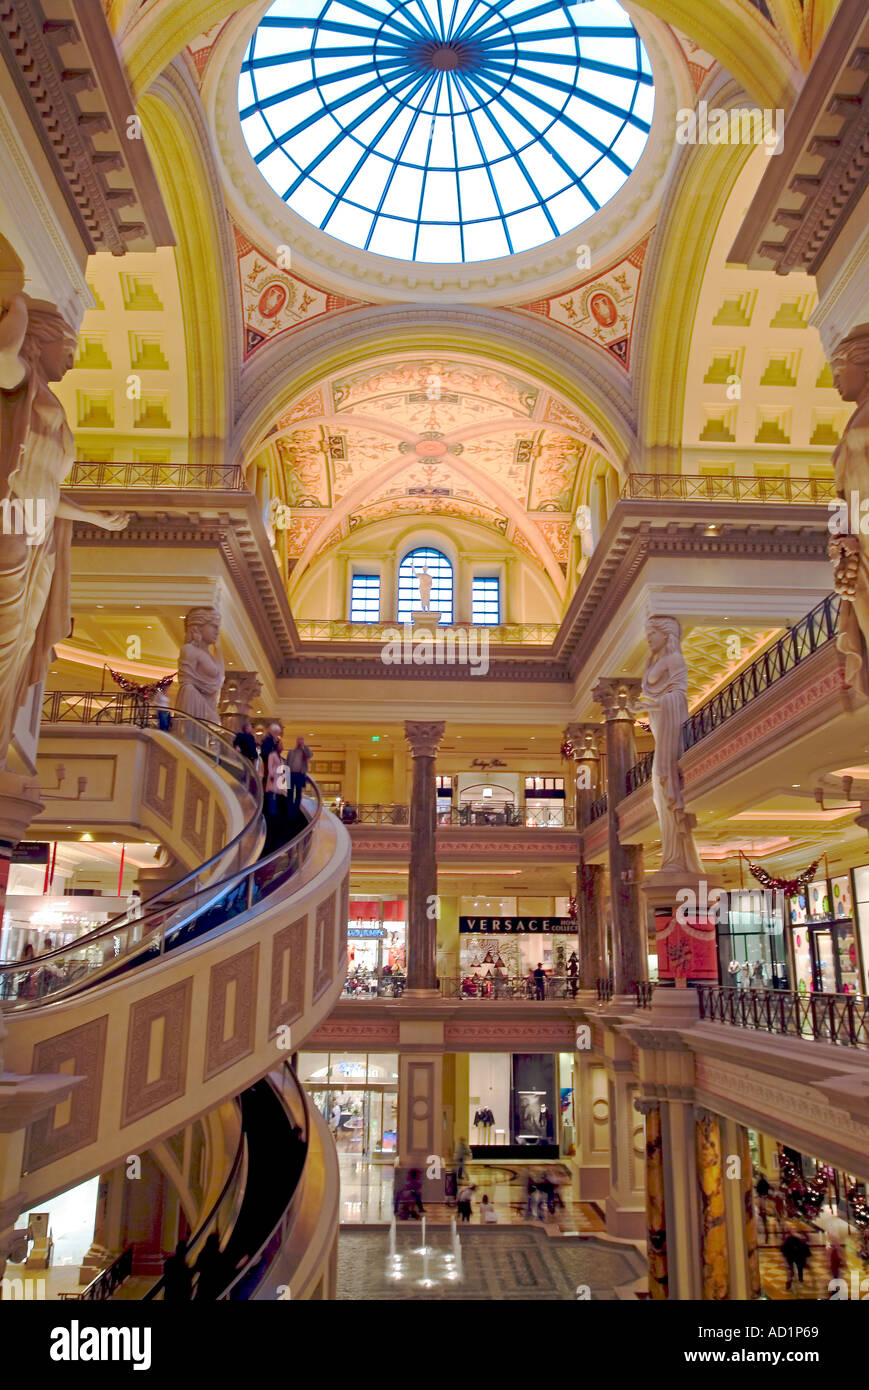 inside the forum shops area at caesars palace mall las vegas nevada stock photo royalty free. Black Bedroom Furniture Sets. Home Design Ideas